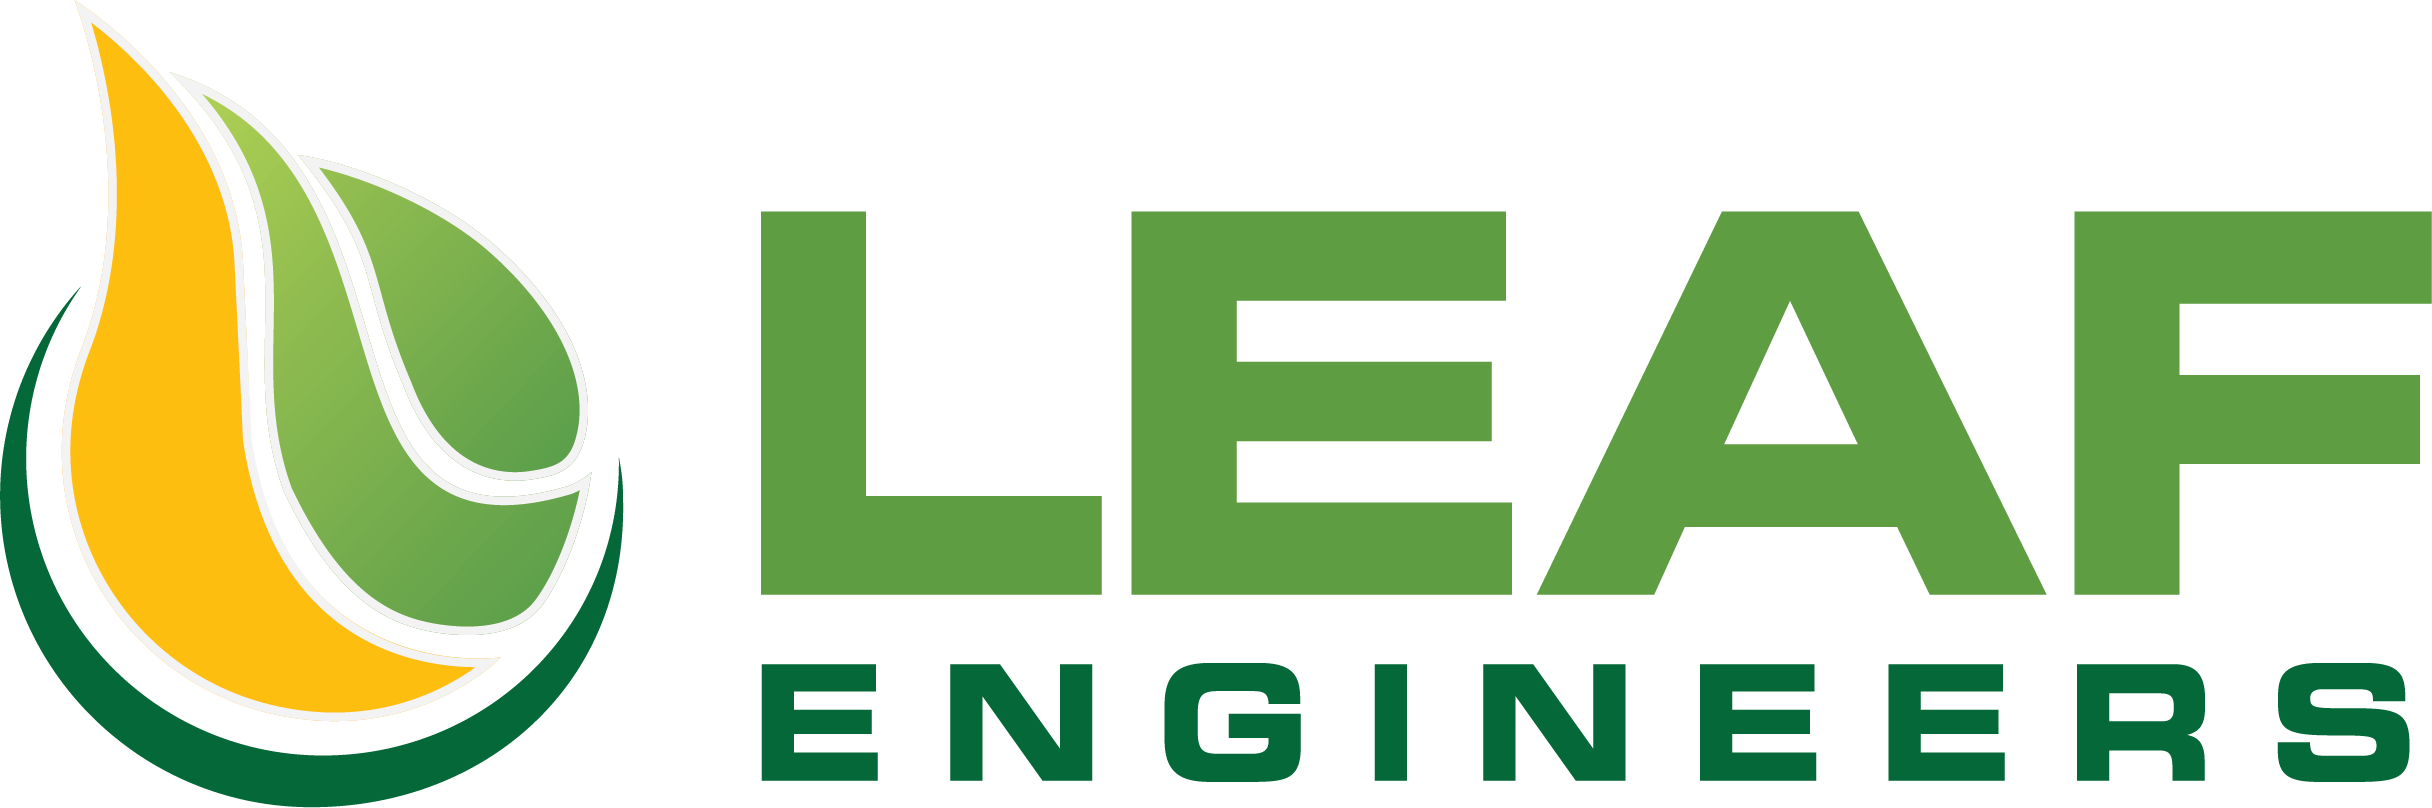 LEAF Engineers